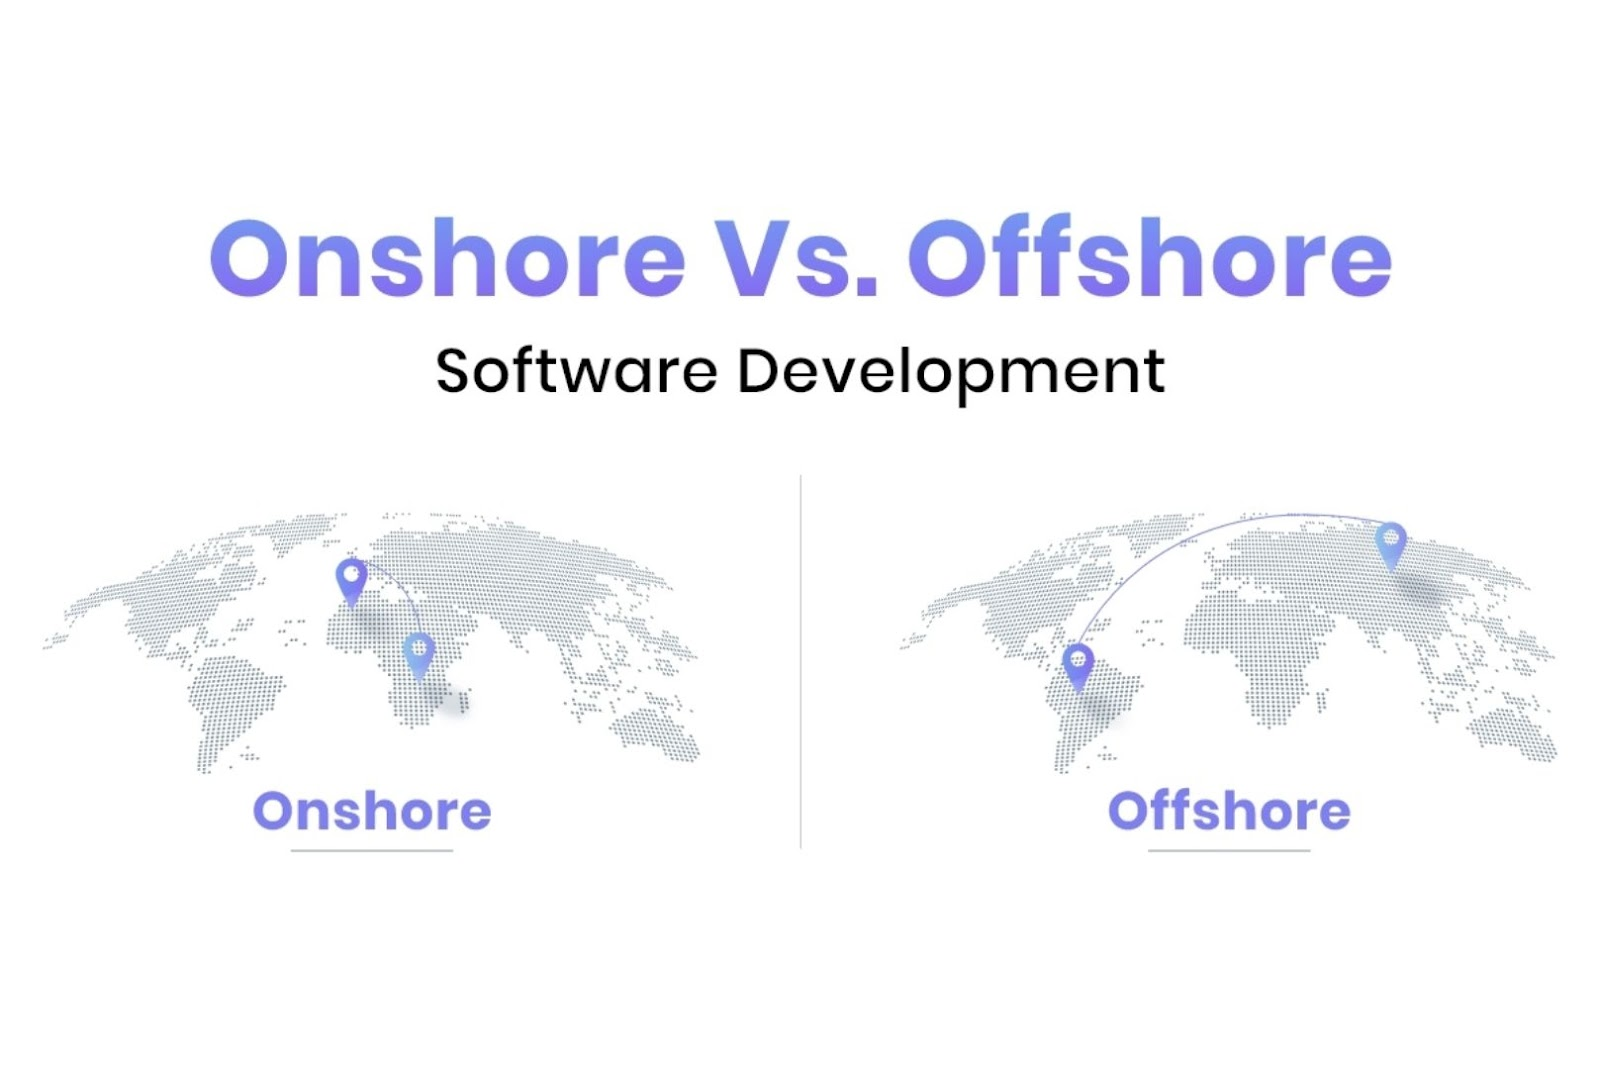 Onshore vs offshore software outsourcing companies